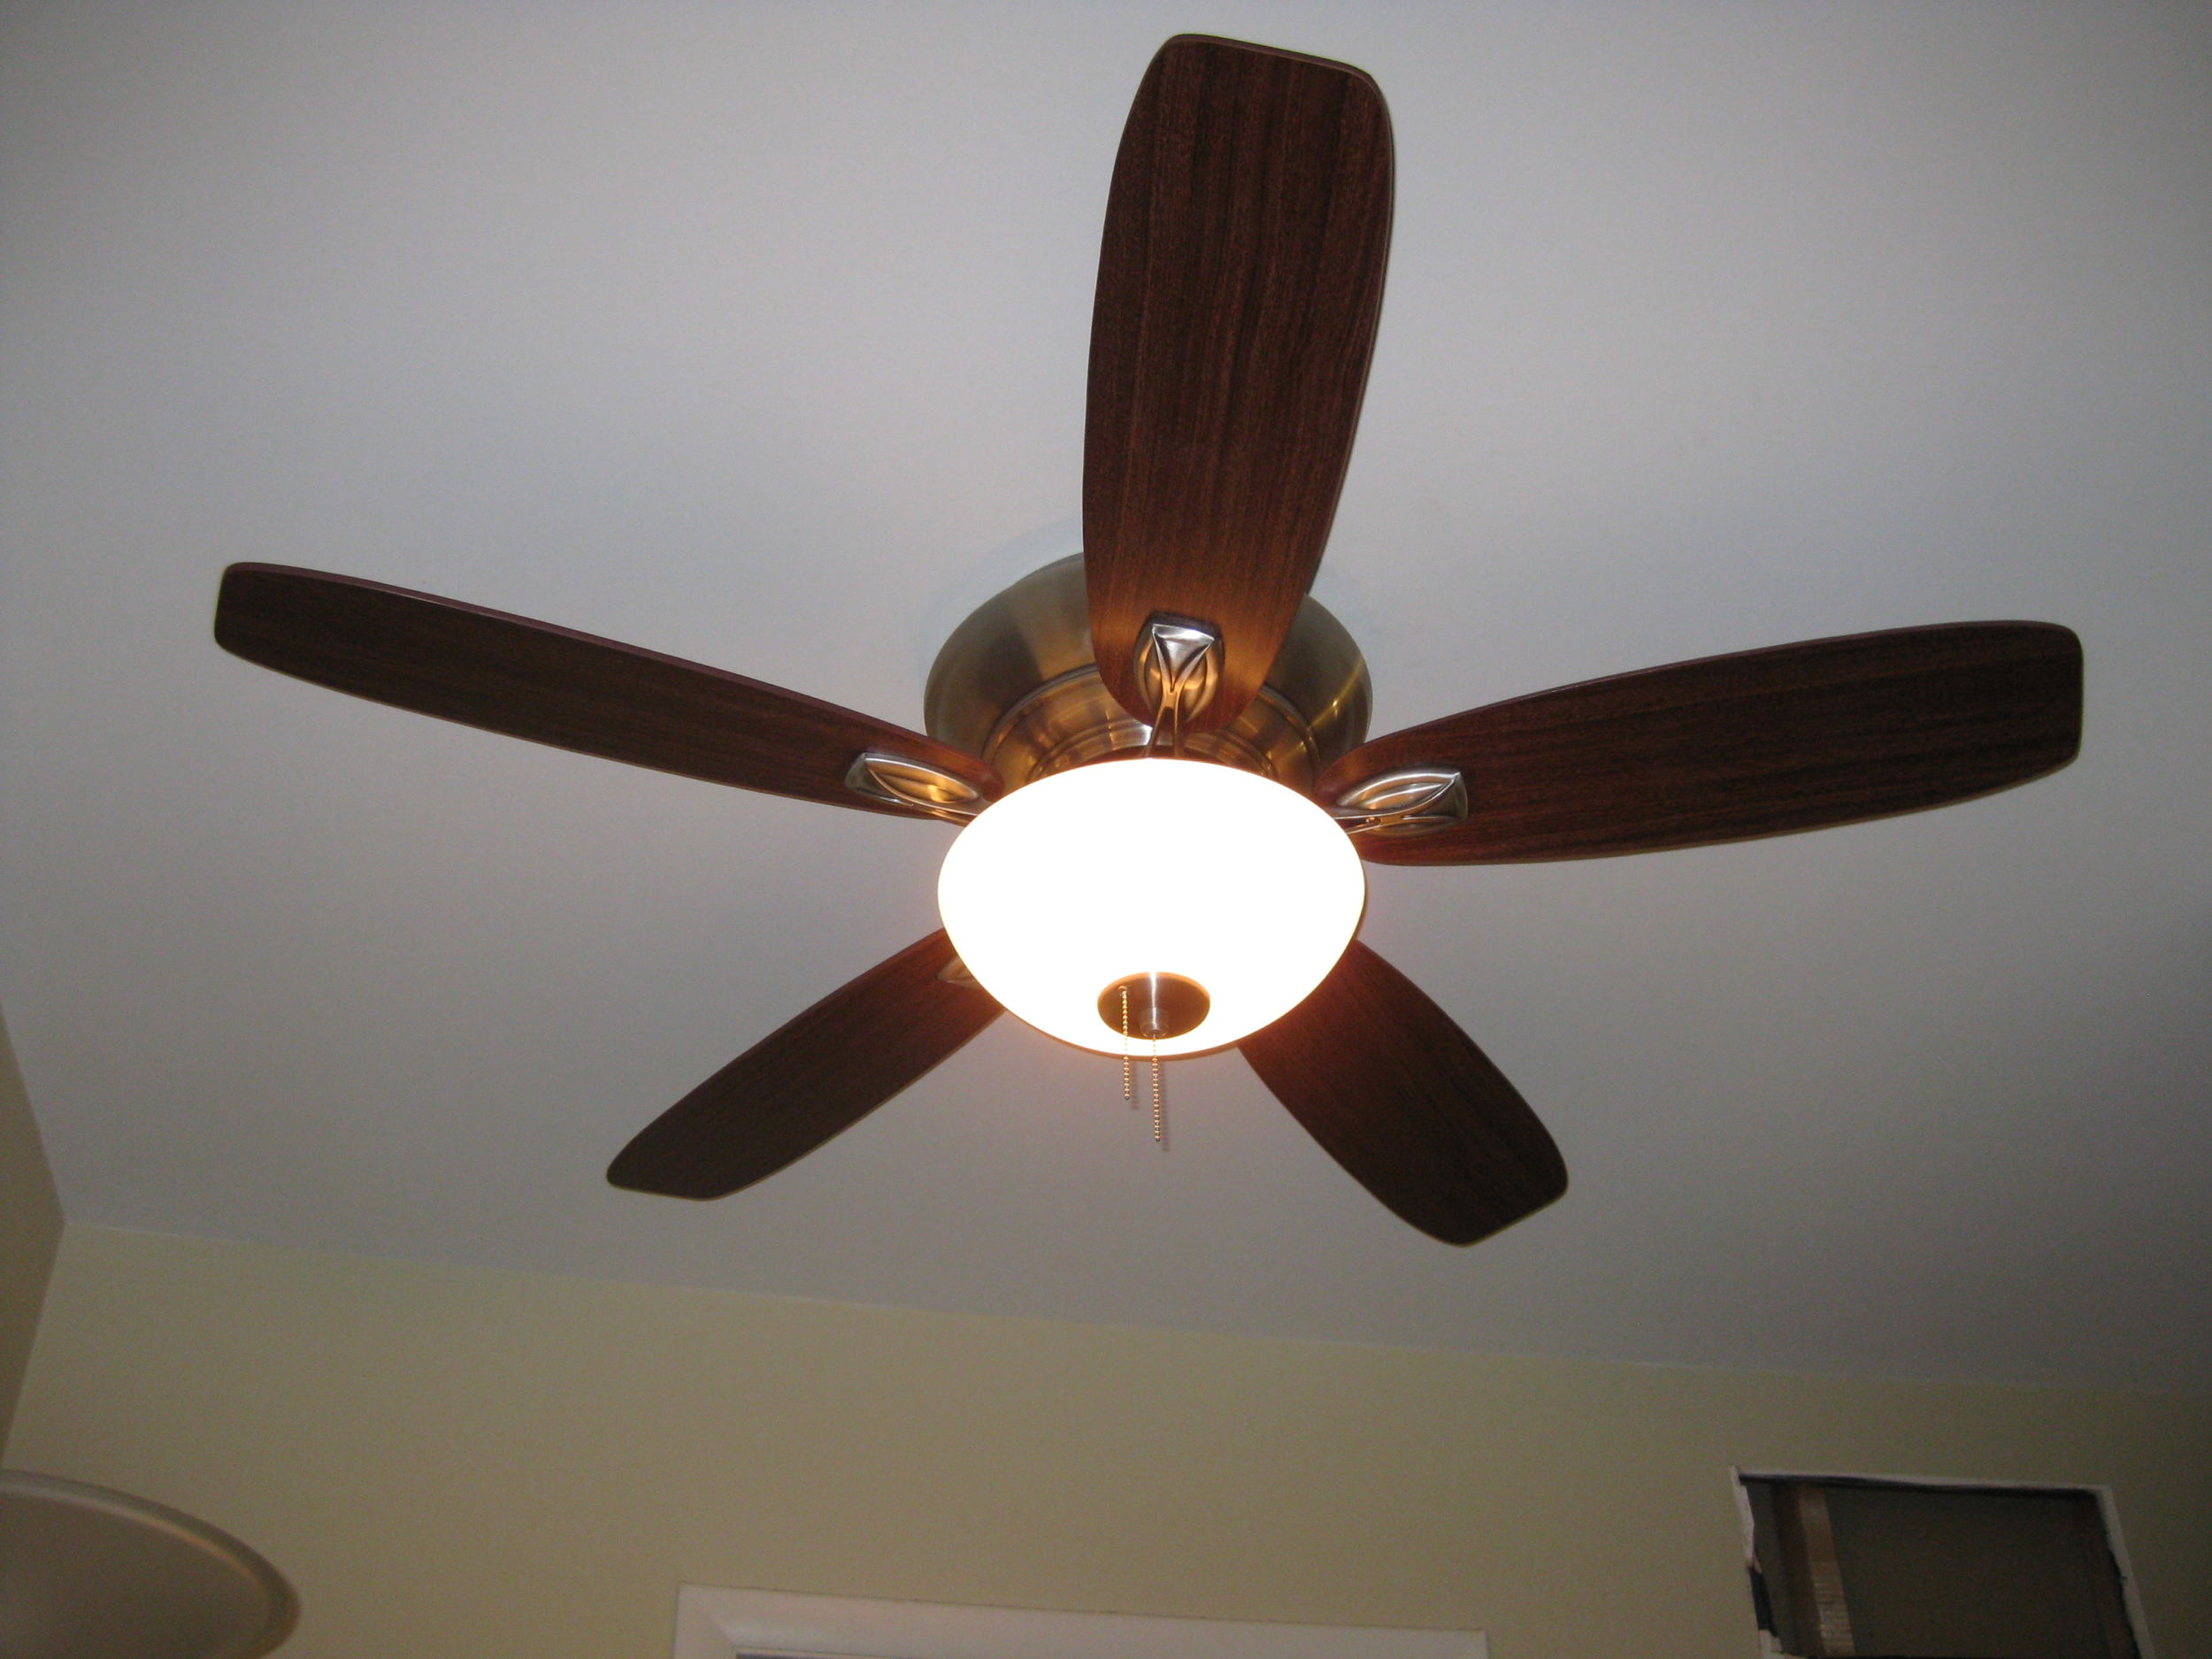 The wrong way and the right way to install a ceiling fan shiney and newand installed aloadofball Images